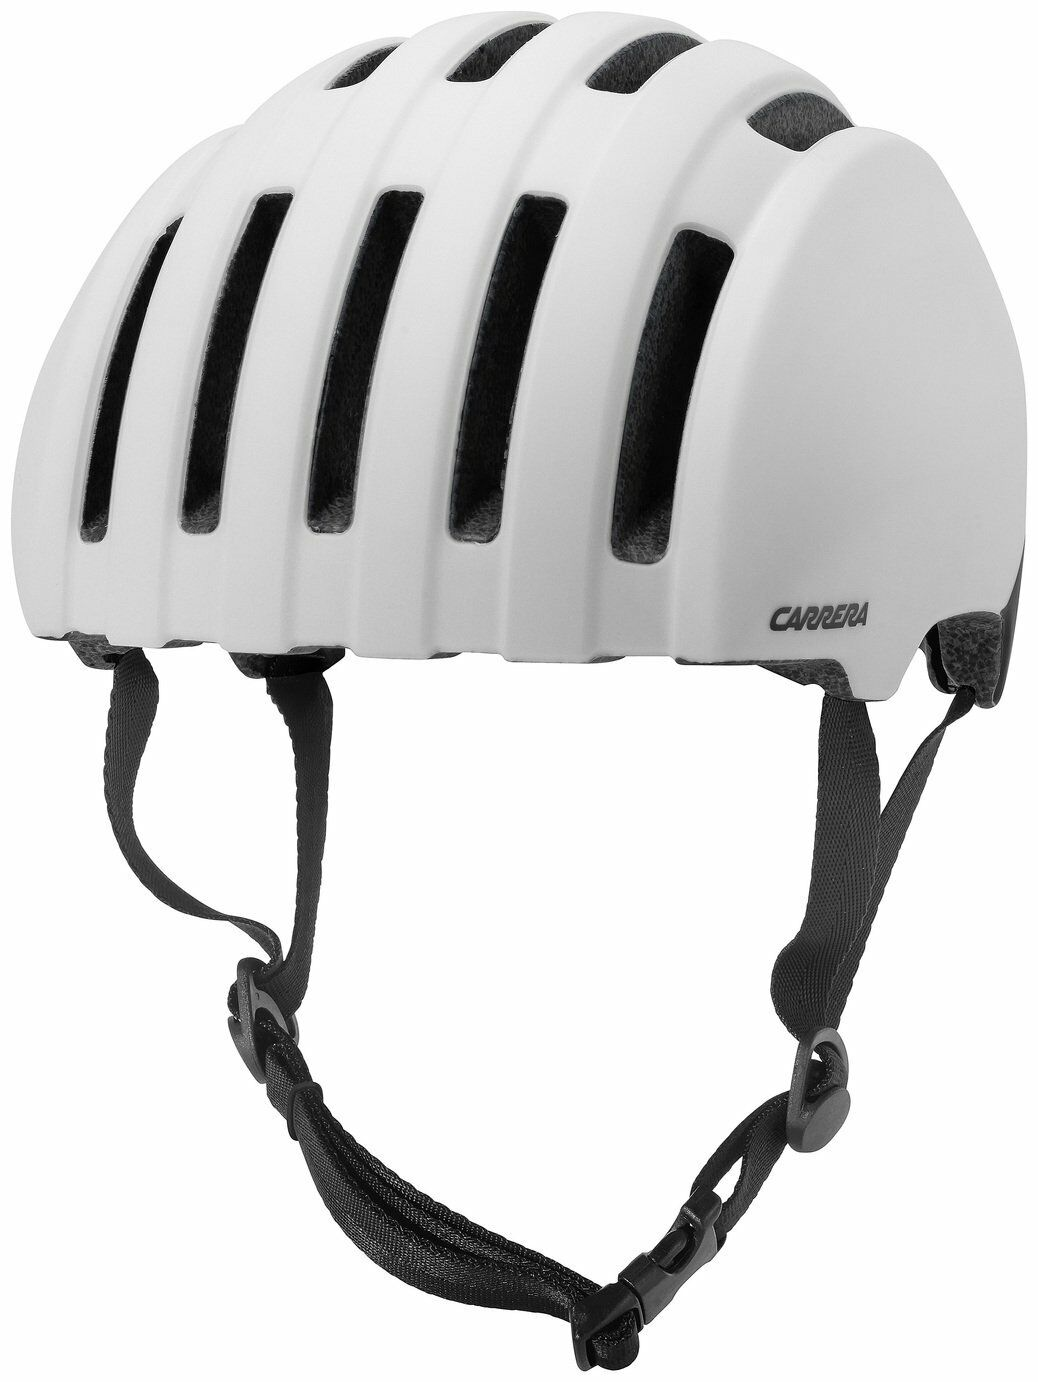 Carrera Precinct Foam Padded Adjustable 55-58cm Helmet - Shiny White.